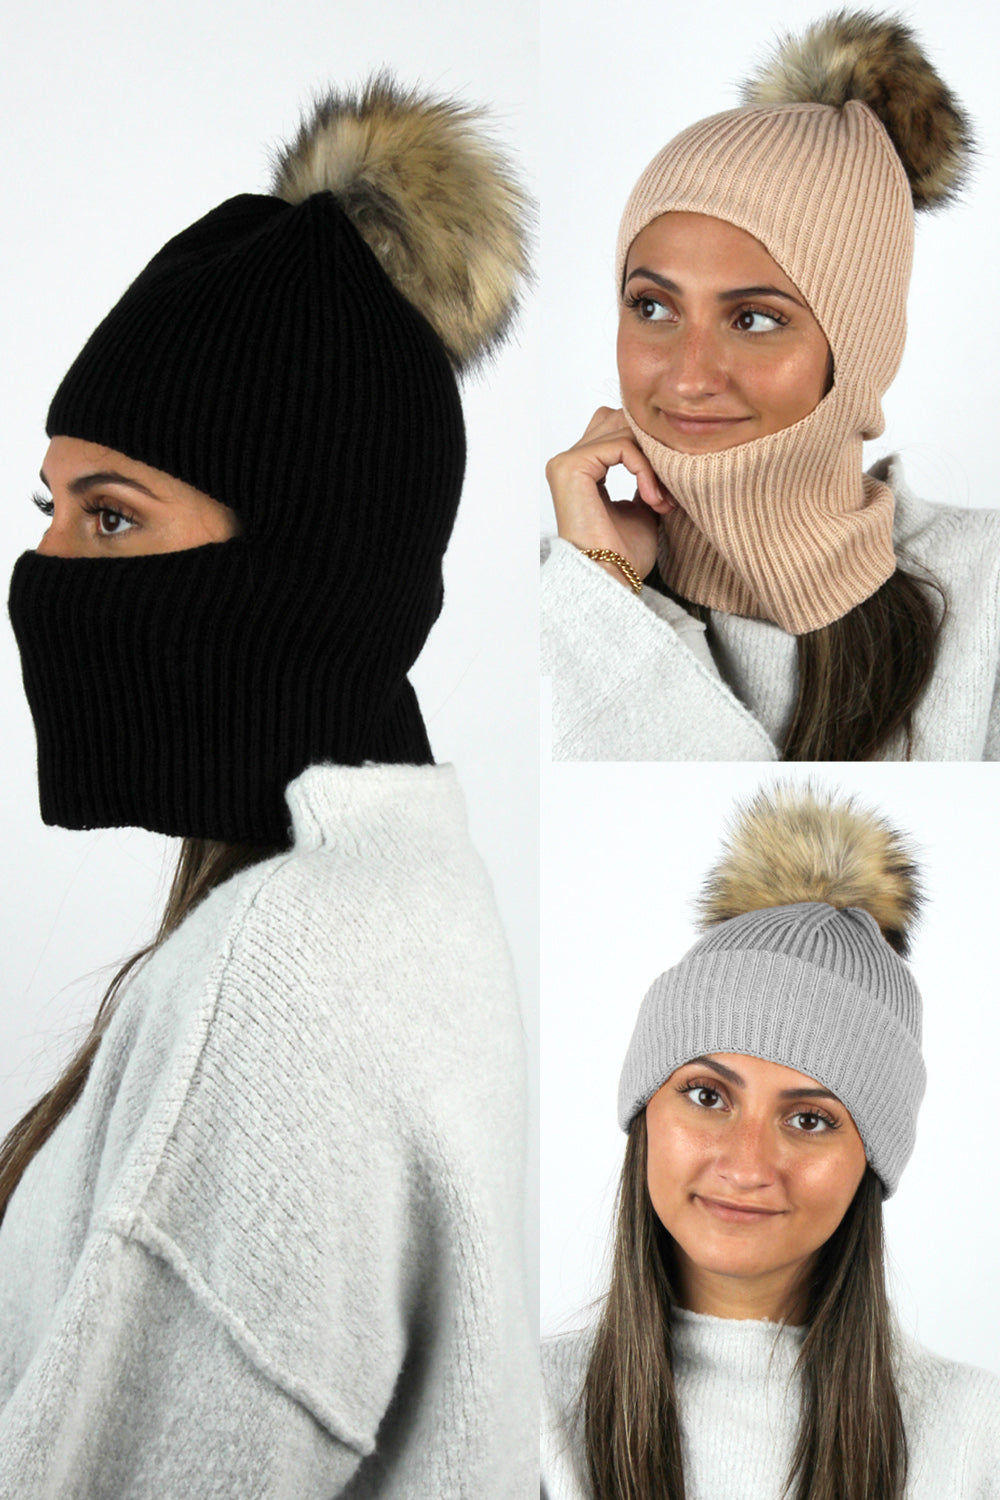 ABBL1891 - Face Covering Knit Beanie with Faux Fur Pom